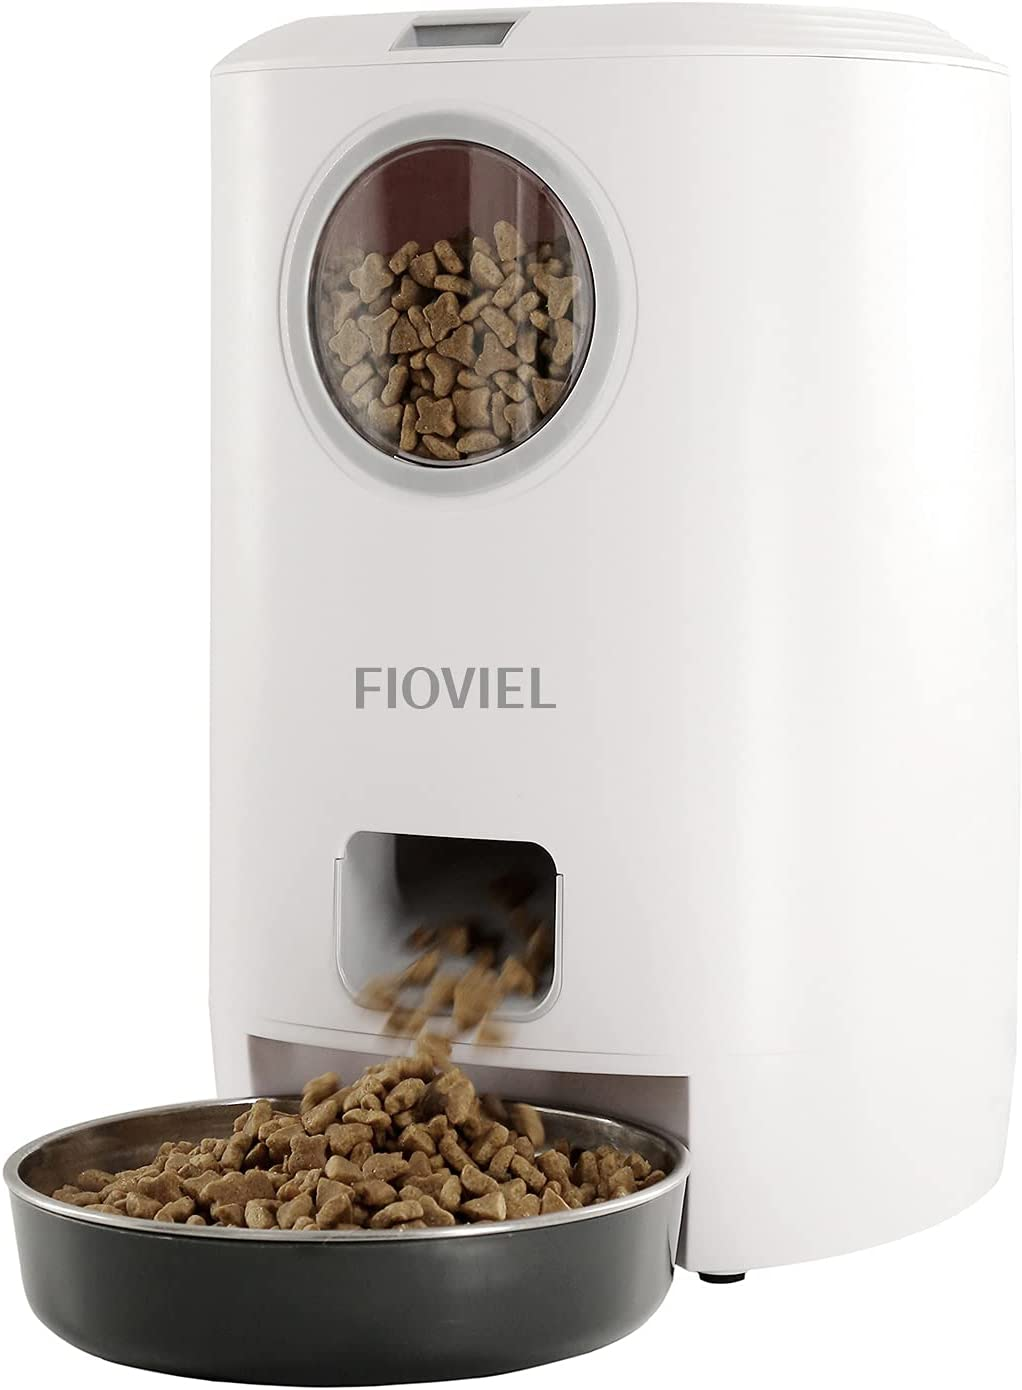 FIOVIEL Automatic Cat Feeder, Automatic Pet Feeder Dry Food 4.5L, Dry Food Dispenser for Cats and Small Dogs with Stainless-Steel Bowl, Clog-Free Design, 10s Voice Recorder & up to 4 Meals per Day